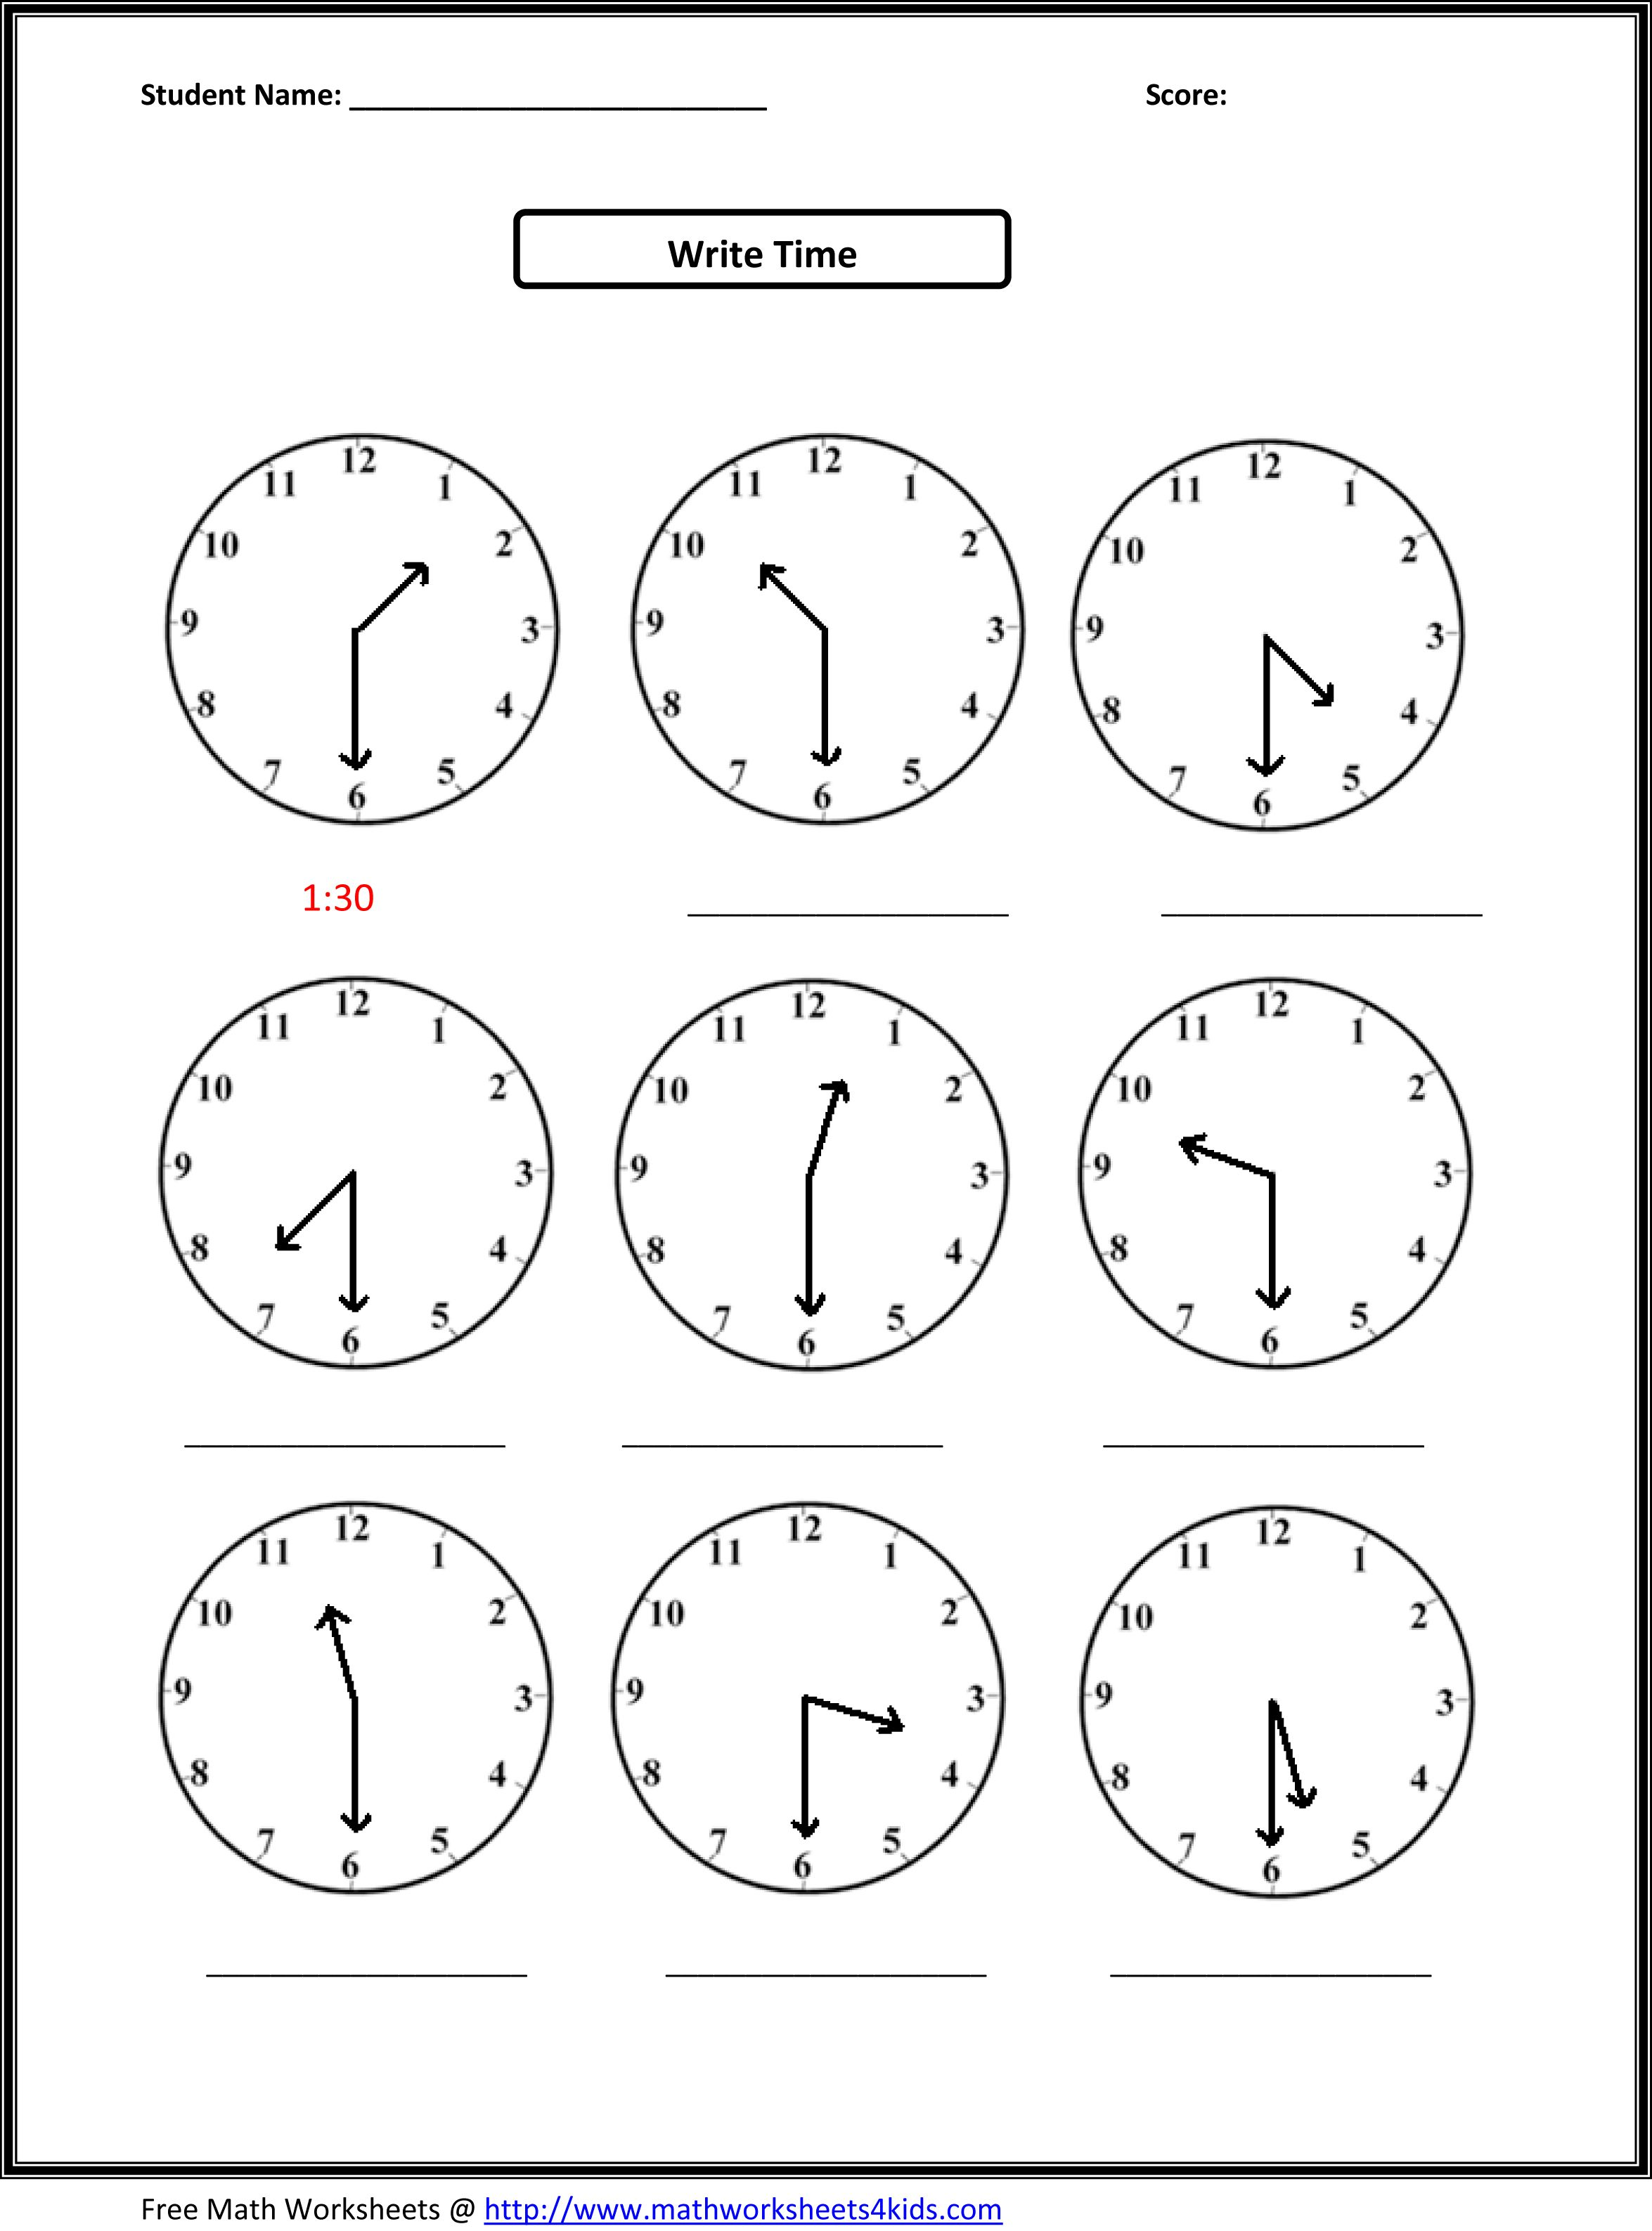 Weirdmailus  Nice Worksheet On Time For Grade   Reocurent With Hot Free Printable Telling Time Worksheets Nd Grade  Reocurent With Endearing How To Write A Paragraph Worksheet Also Elements Worksheet In Addition Gcf And Lcm Worksheets And One Step Equations Multiplication And Division Worksheet As Well As Build An Atom Worksheet Answers Additionally Feelings Worksheet From Reocurentcom With Weirdmailus  Hot Worksheet On Time For Grade   Reocurent With Endearing Free Printable Telling Time Worksheets Nd Grade  Reocurent And Nice How To Write A Paragraph Worksheet Also Elements Worksheet In Addition Gcf And Lcm Worksheets From Reocurentcom